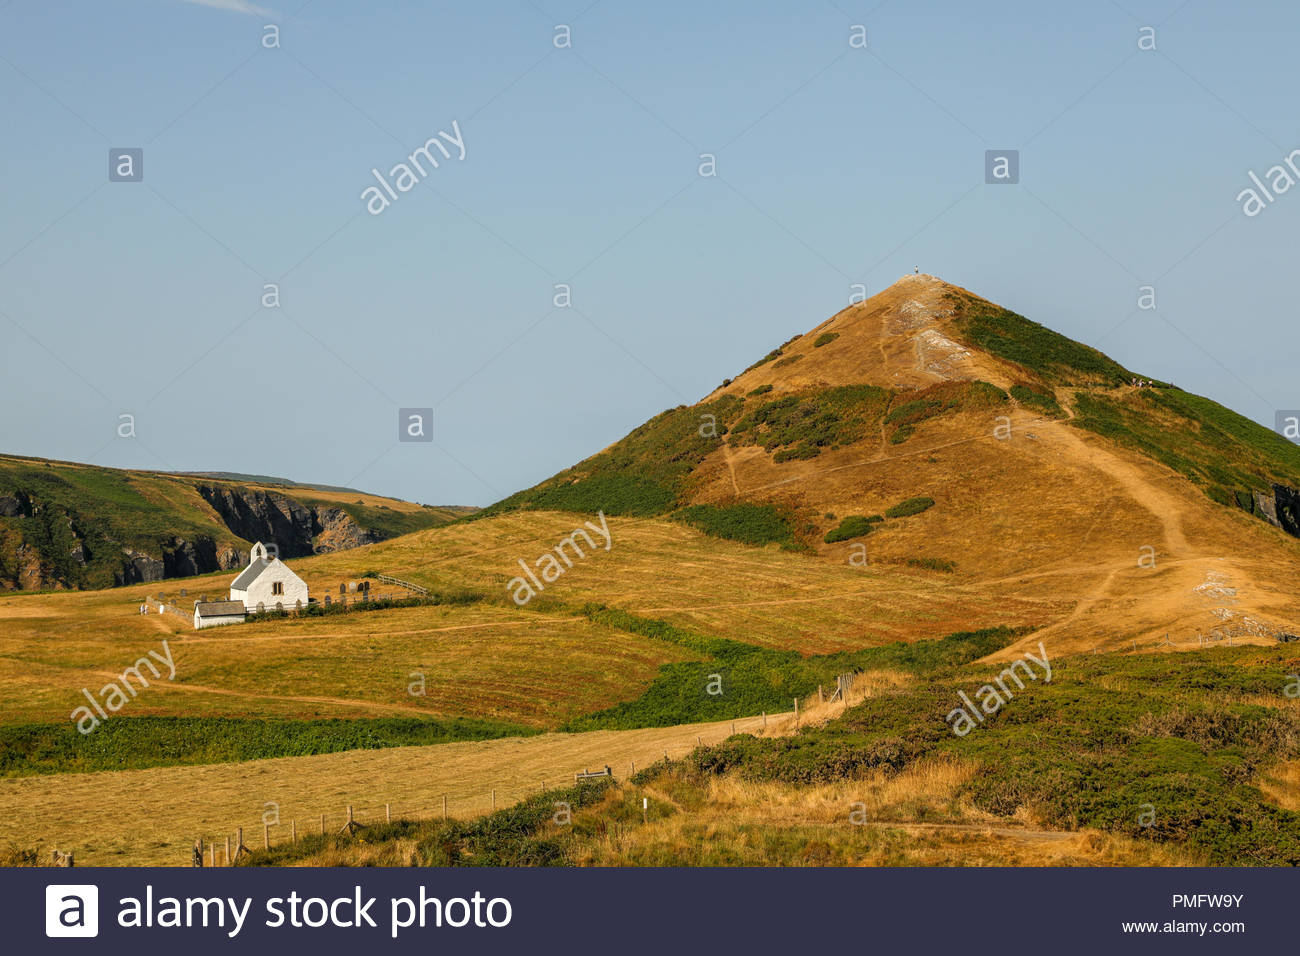 the historic chapel the church of the holy cross eglwys y grog welsh at mwnt in south ceredigion wales uk PMFW9Y